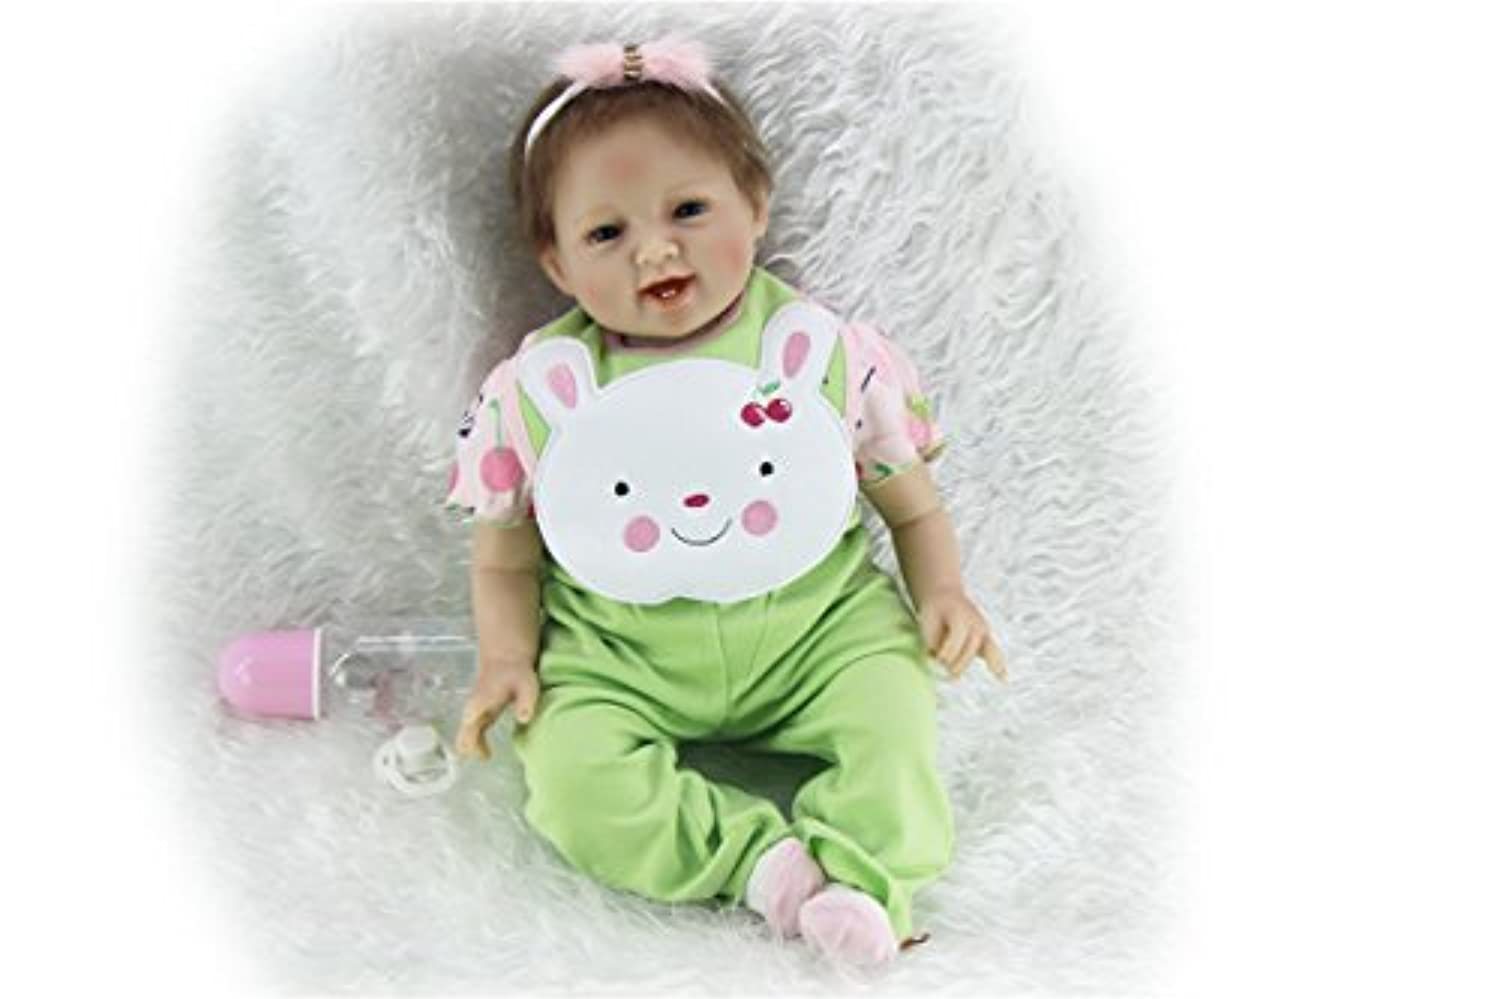 SanyDoll Rebornベビー人形ソフトSilicone 22インチ55 cm磁気Lovely Lifelike Cute Lovely Baby Rabbit Suit